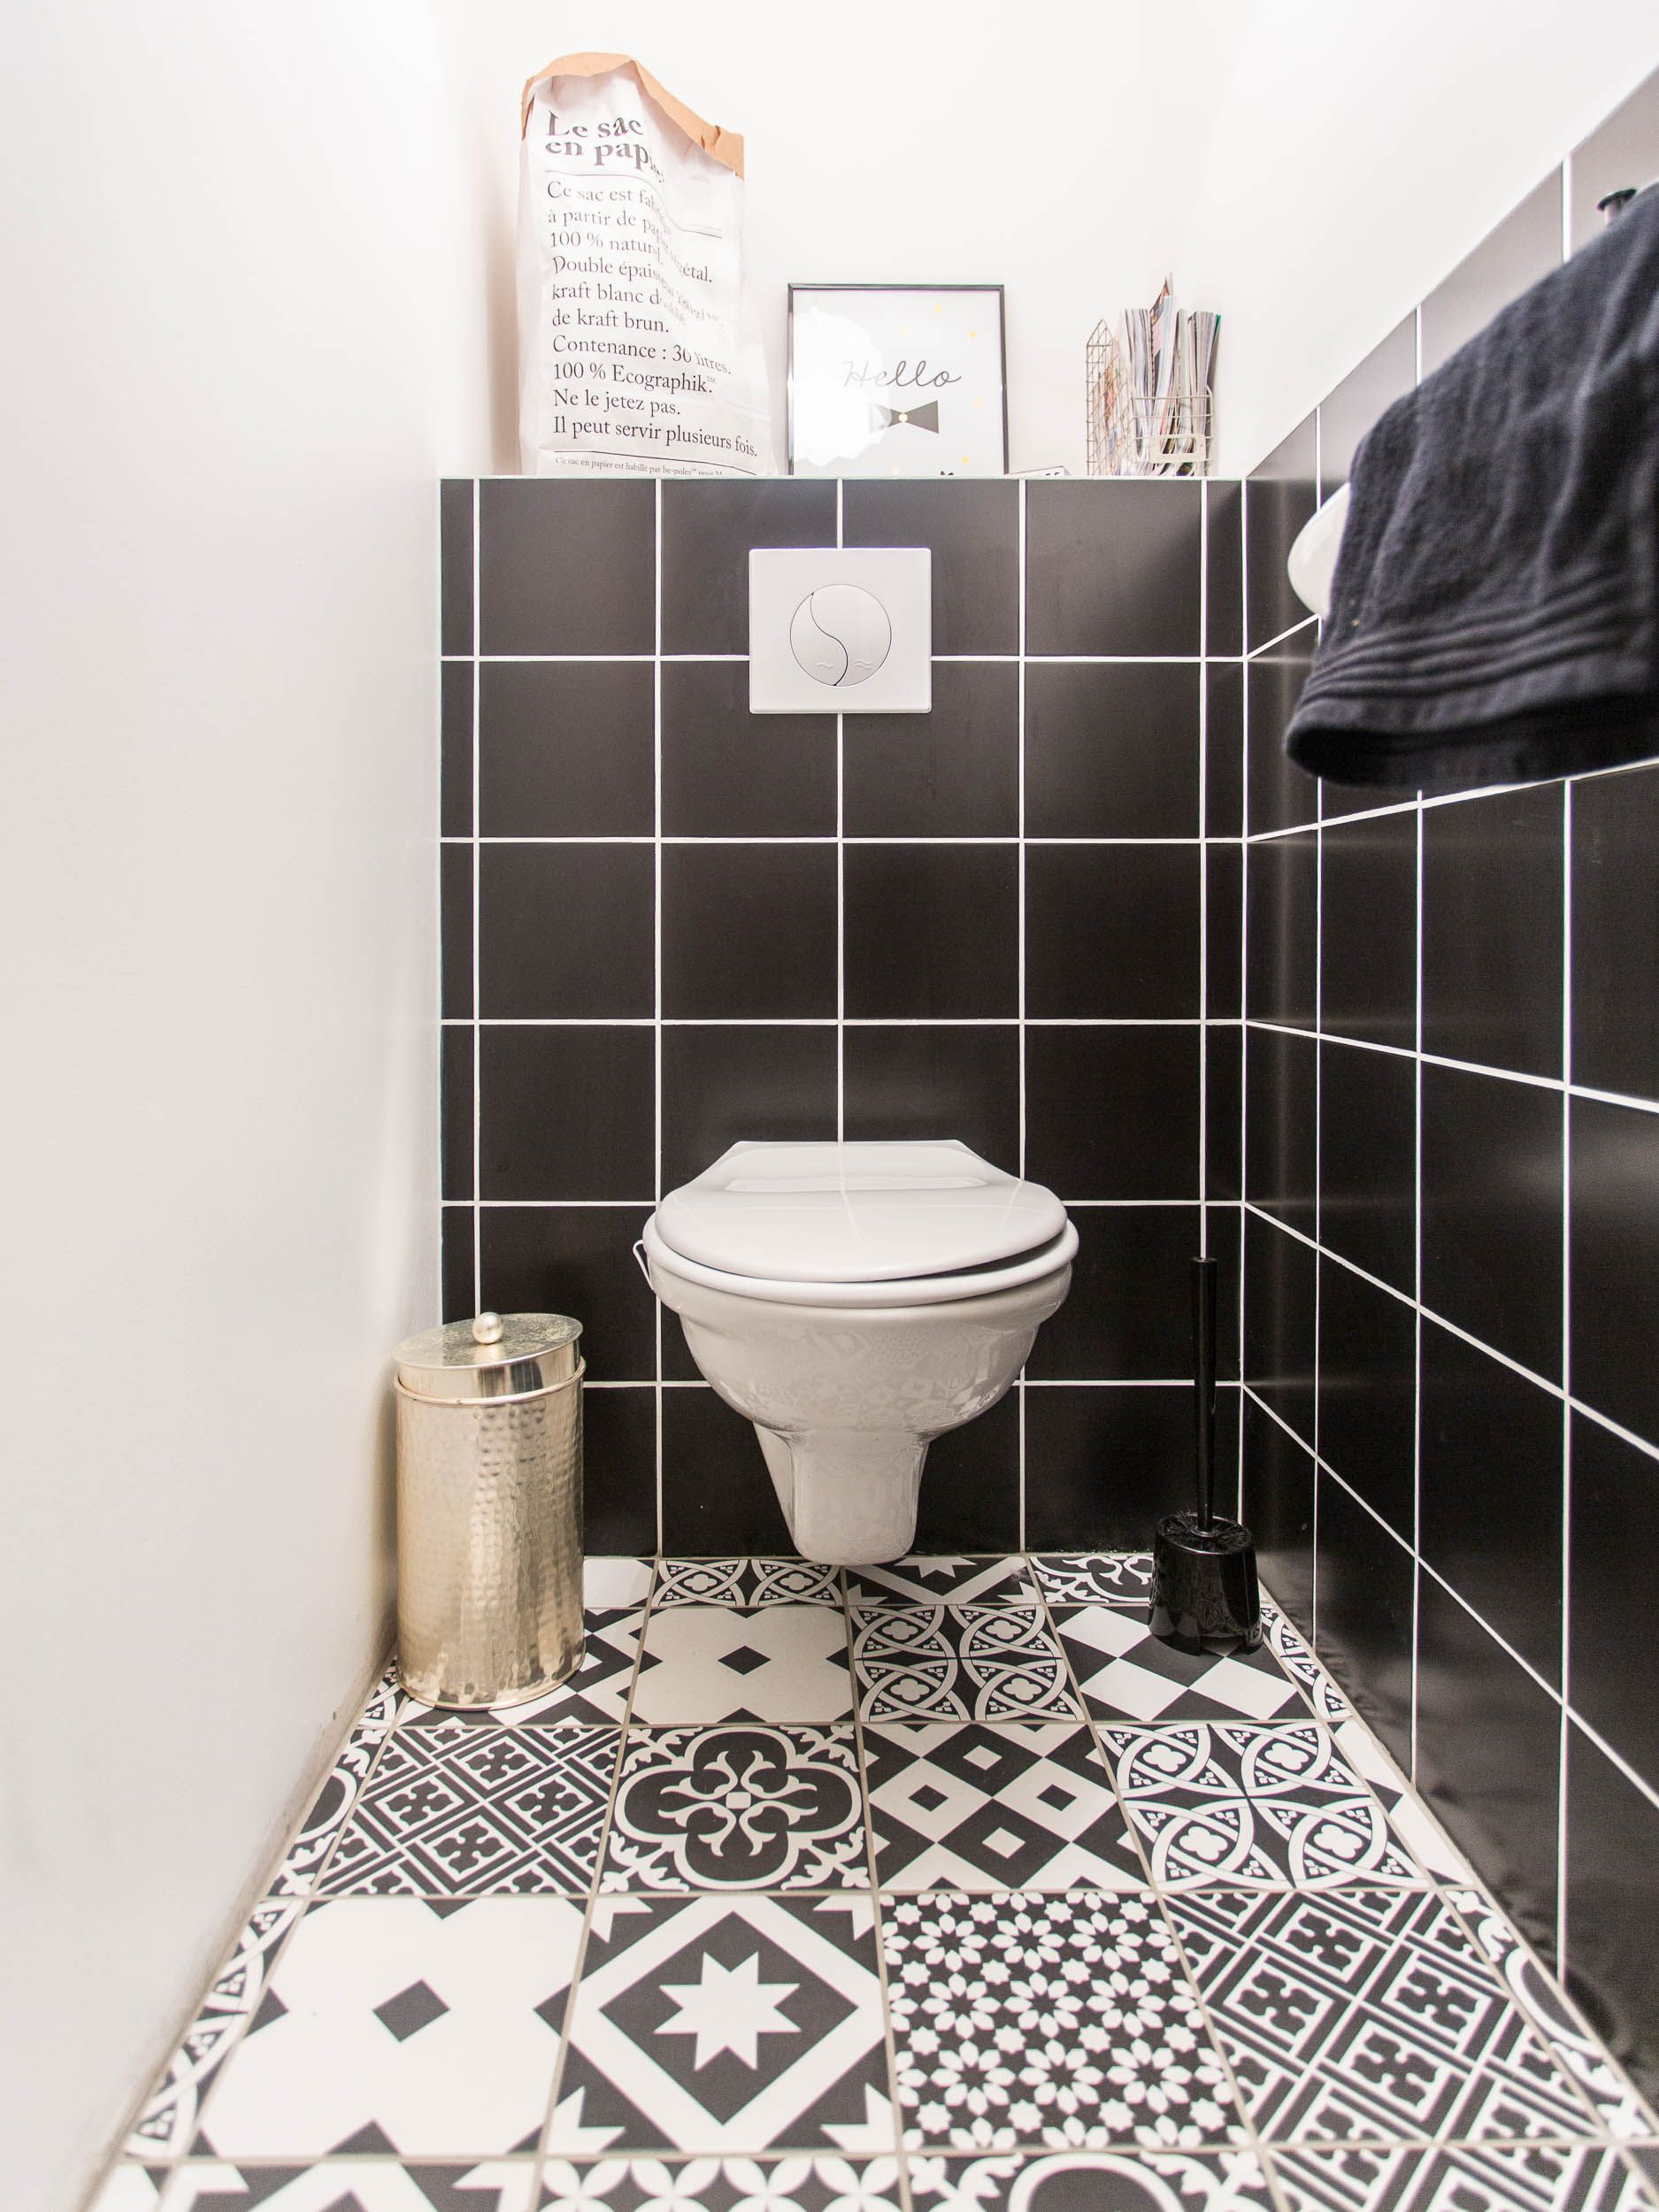 Jolie d coration de toilettes par marc antoine for Carrelage wc gris